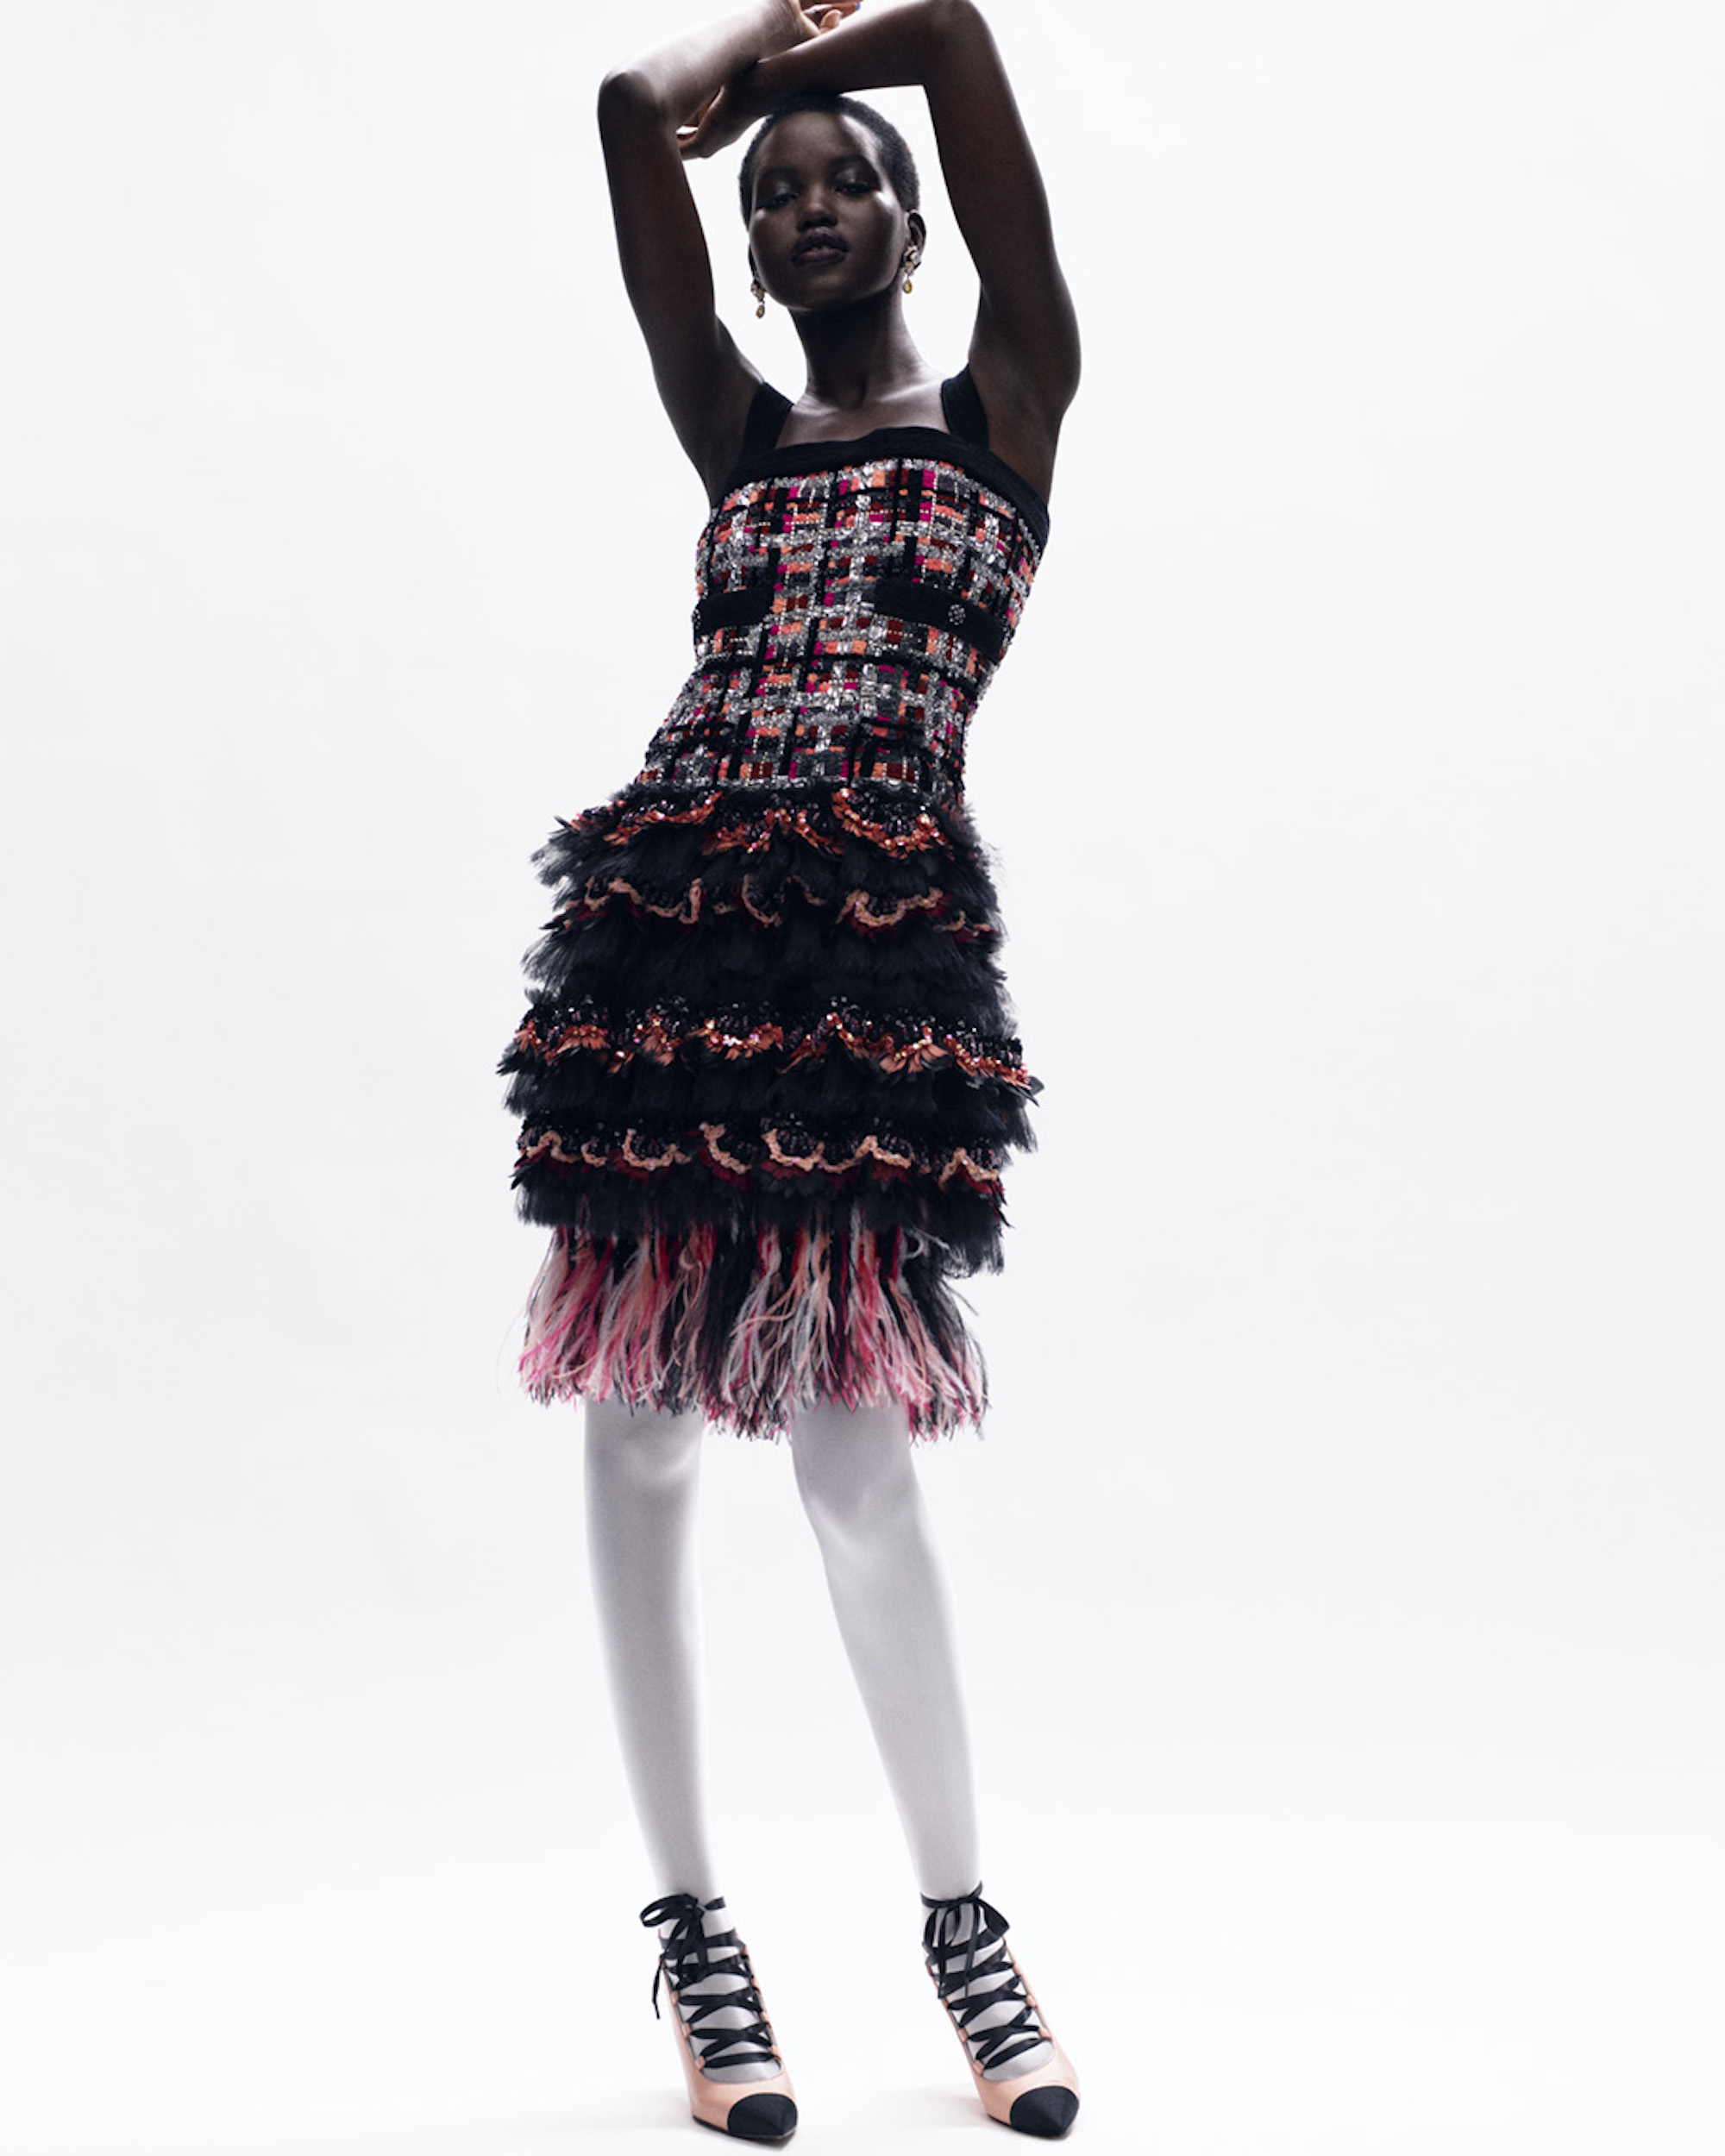 Chanel Haute Couture AW20/21 collection pink and black ruffle tweed dress